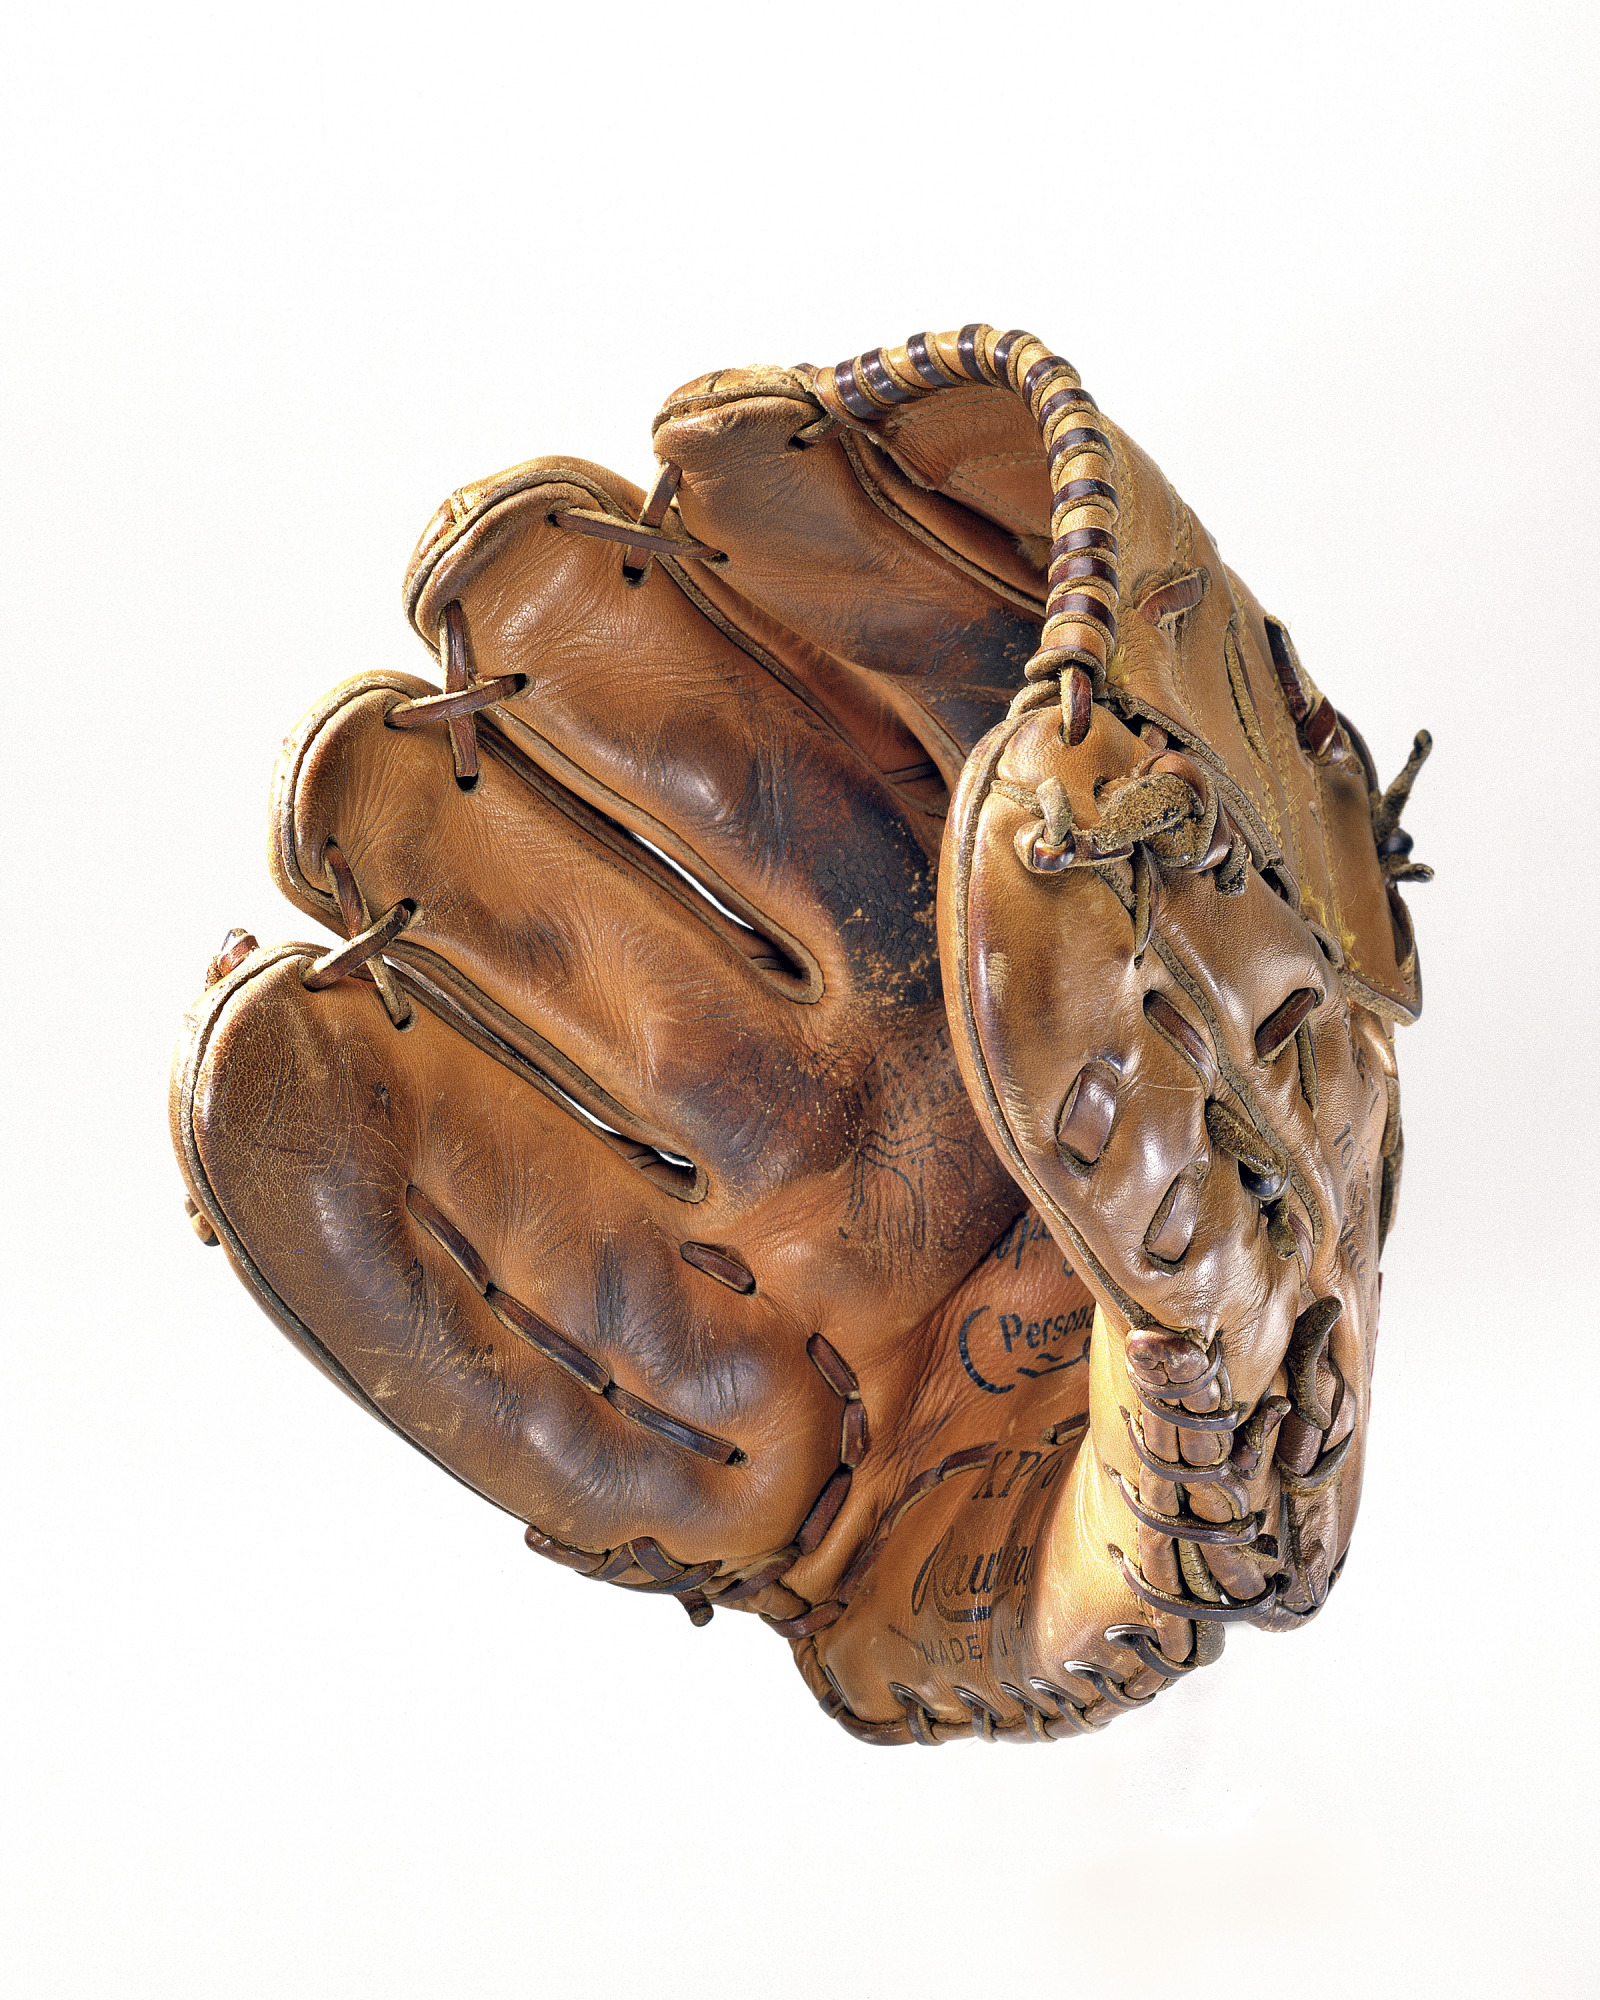 images for Baseball Glove, used by Sandy Koufax